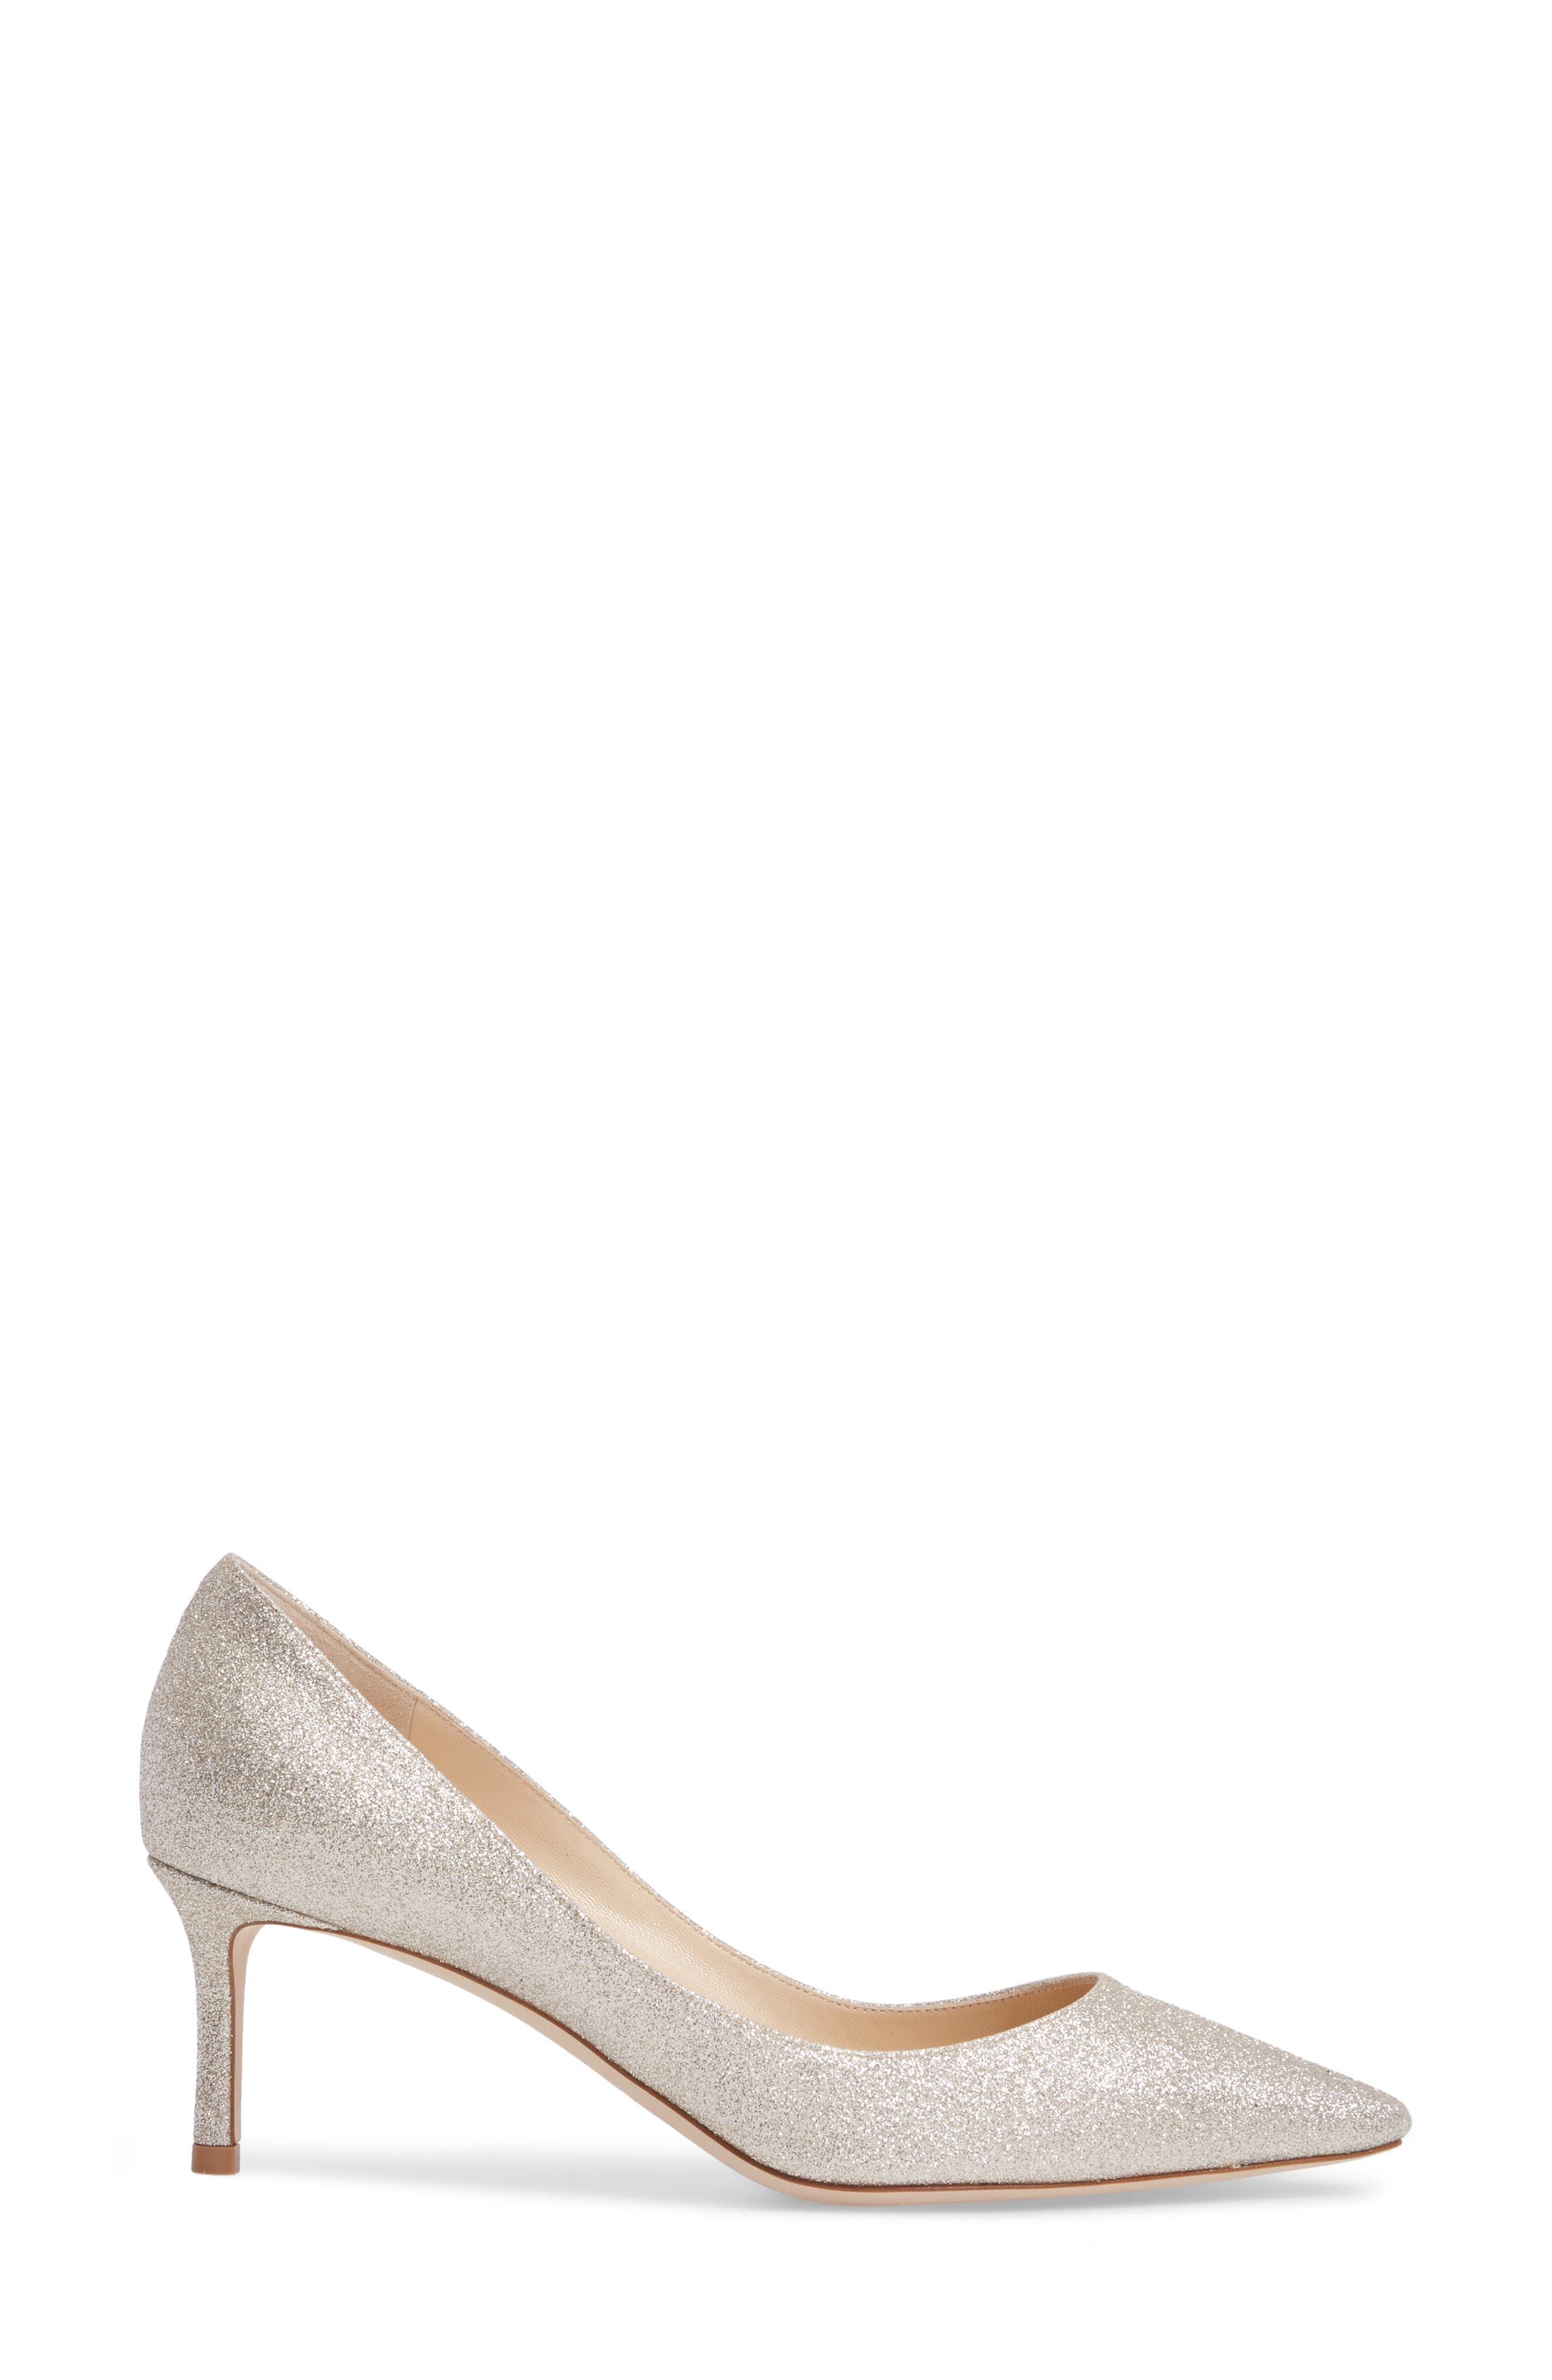 Alternate Image 3  - Jimmy Choo Romy Glitter Pump (Women)